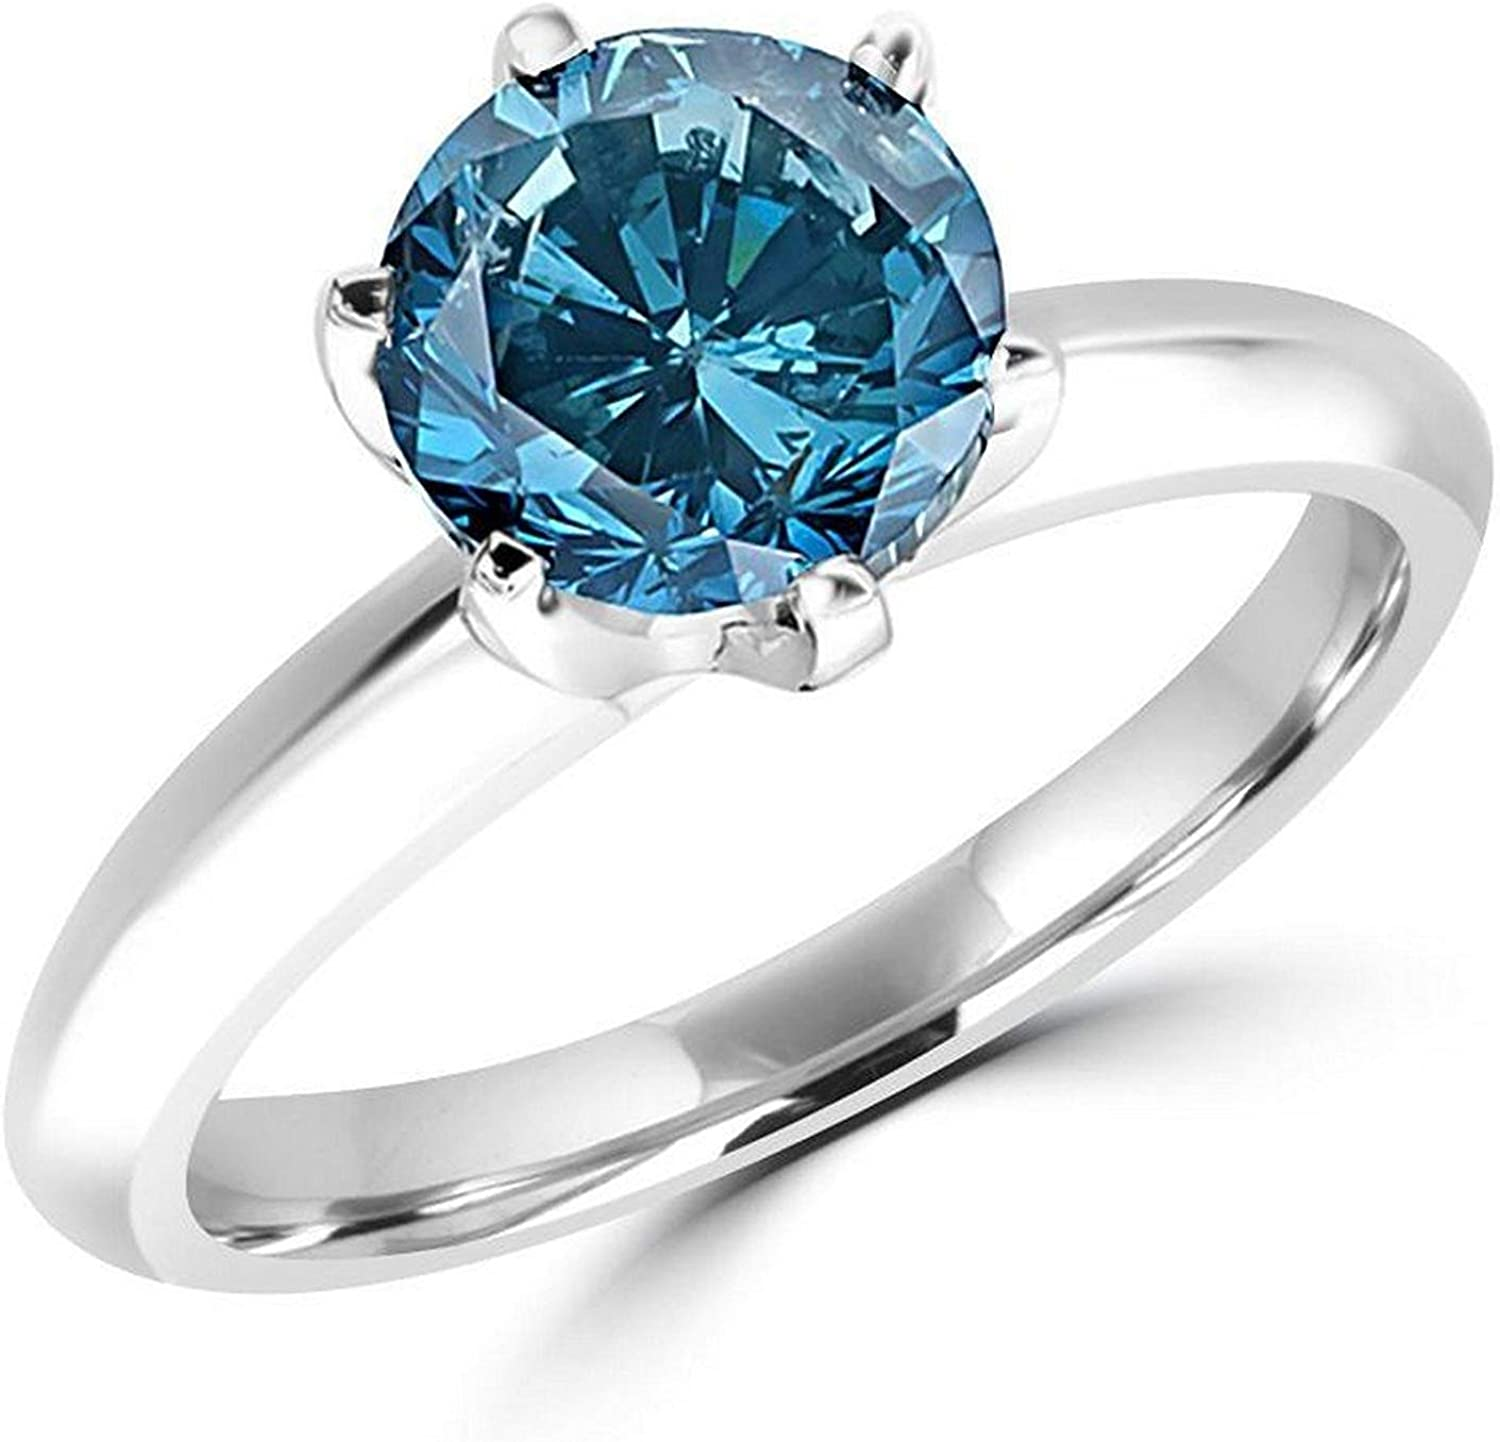 Amazon Com 1 2 5 Carat Total Weight Round 14k White Gold Blue Diamond Ring Aaa Quality Jewelry